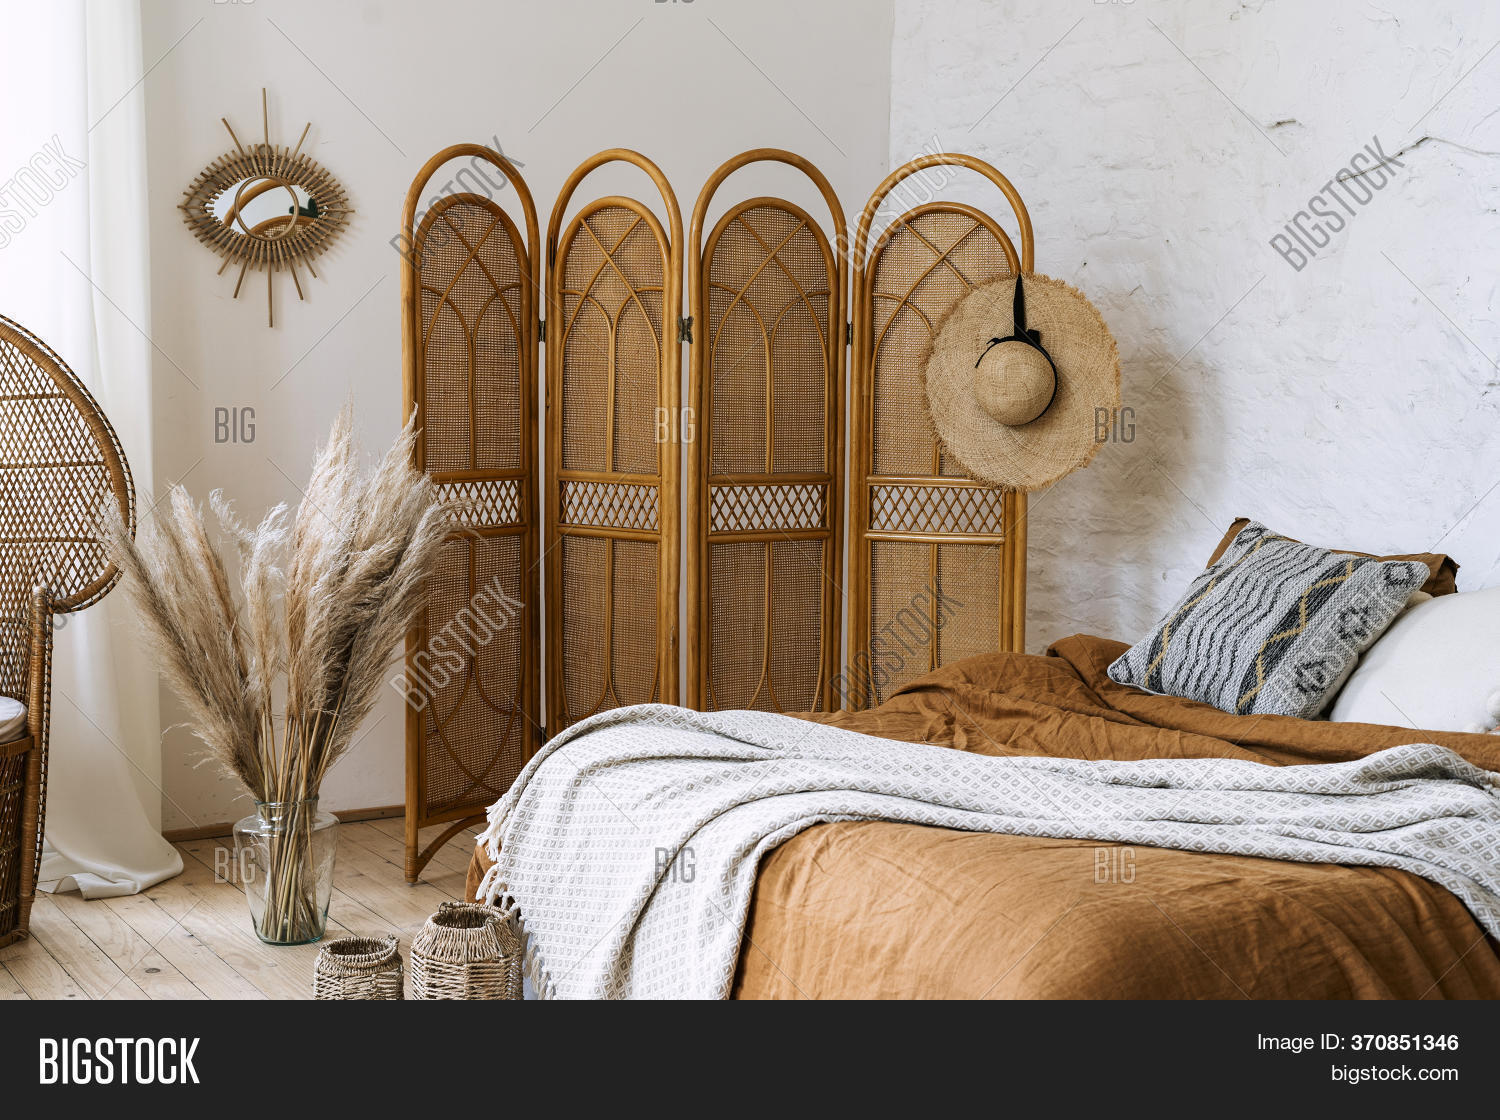 Comfort Bedroom Boho Image Photo Free Trial Bigstock